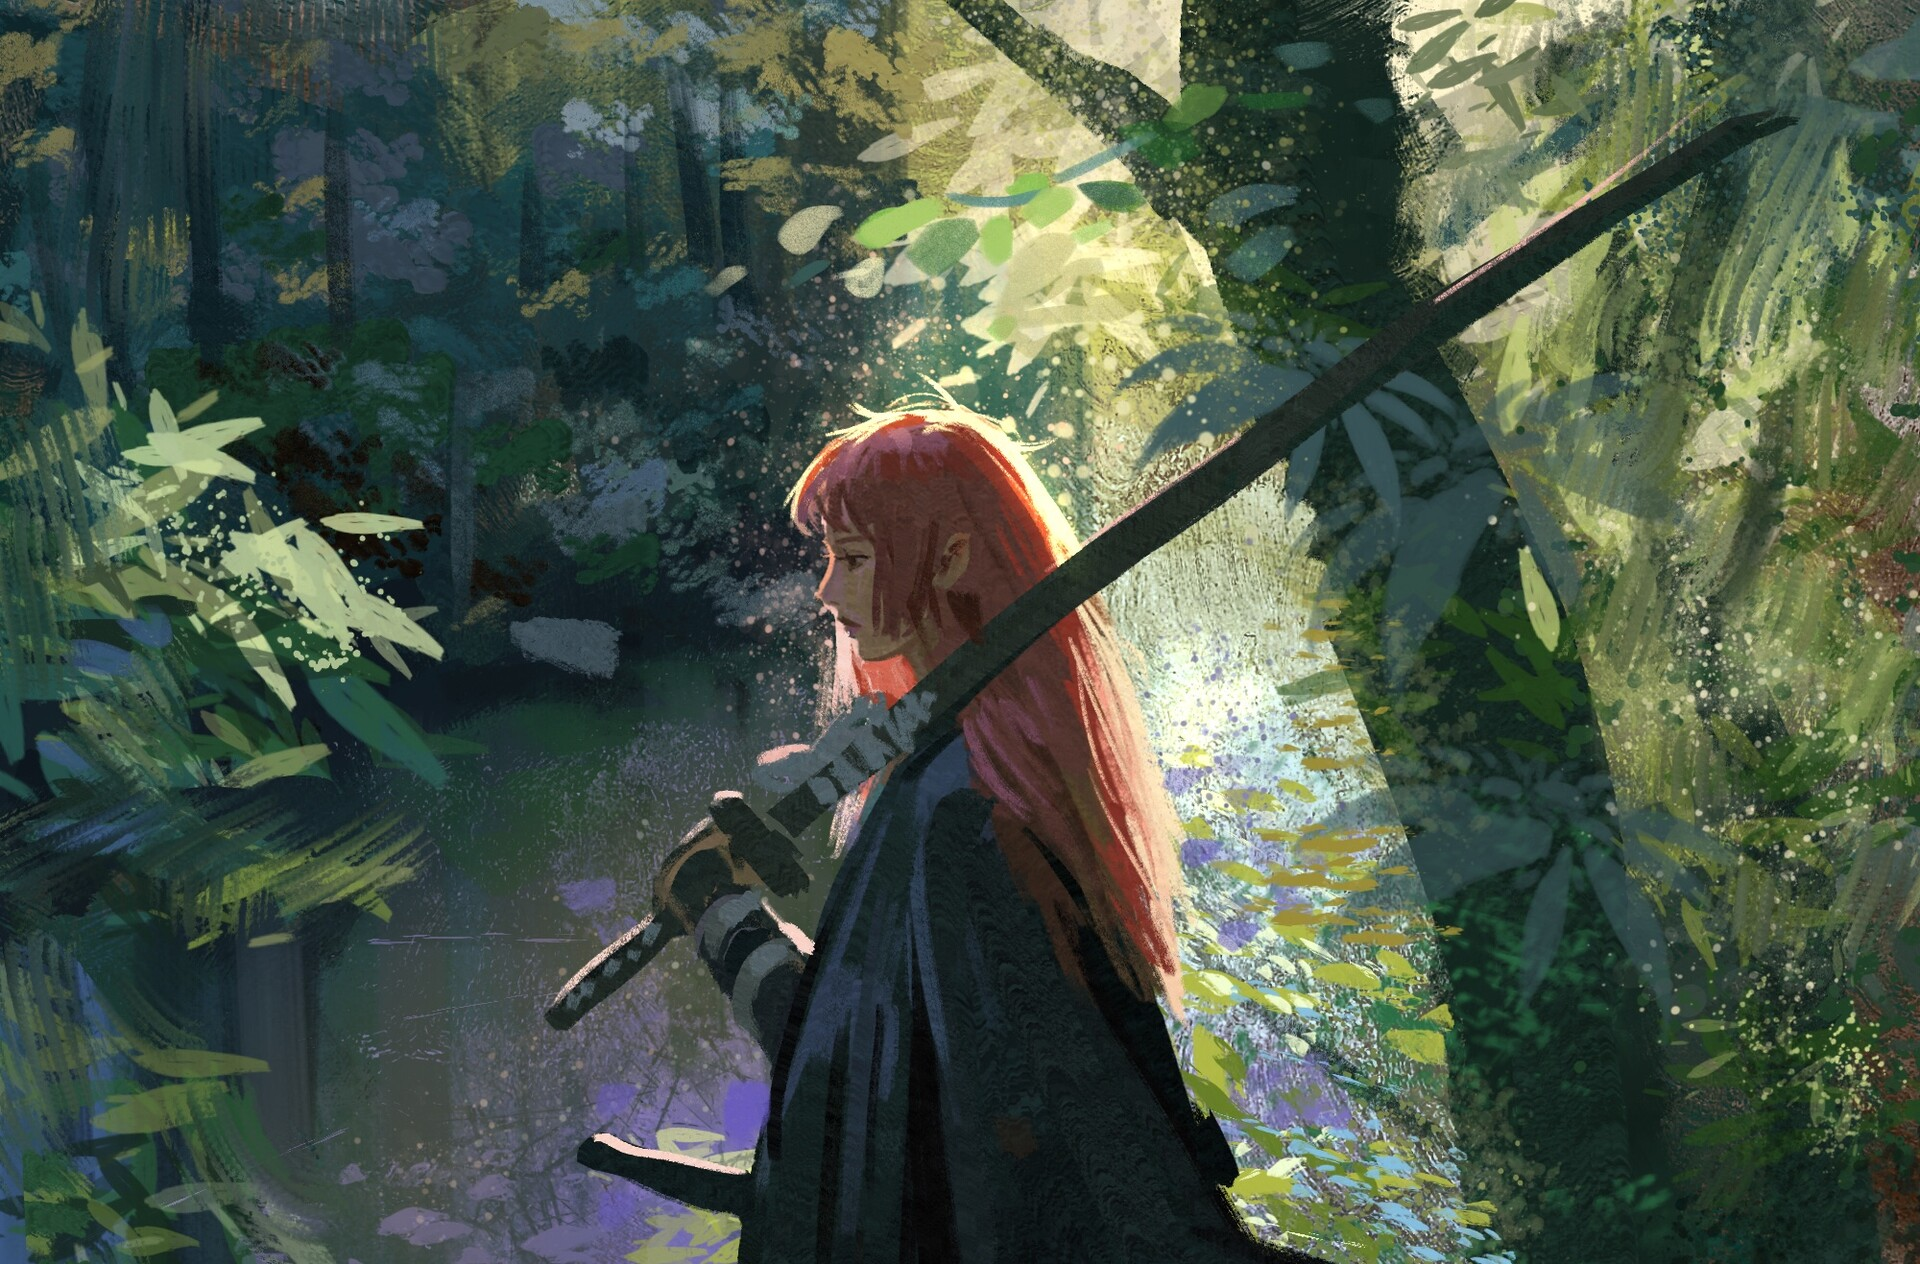 General 1920x1264 artwork fantasy art women sword women outdoors nature trees redhead weapon women with swords fantasy girl long hair forest